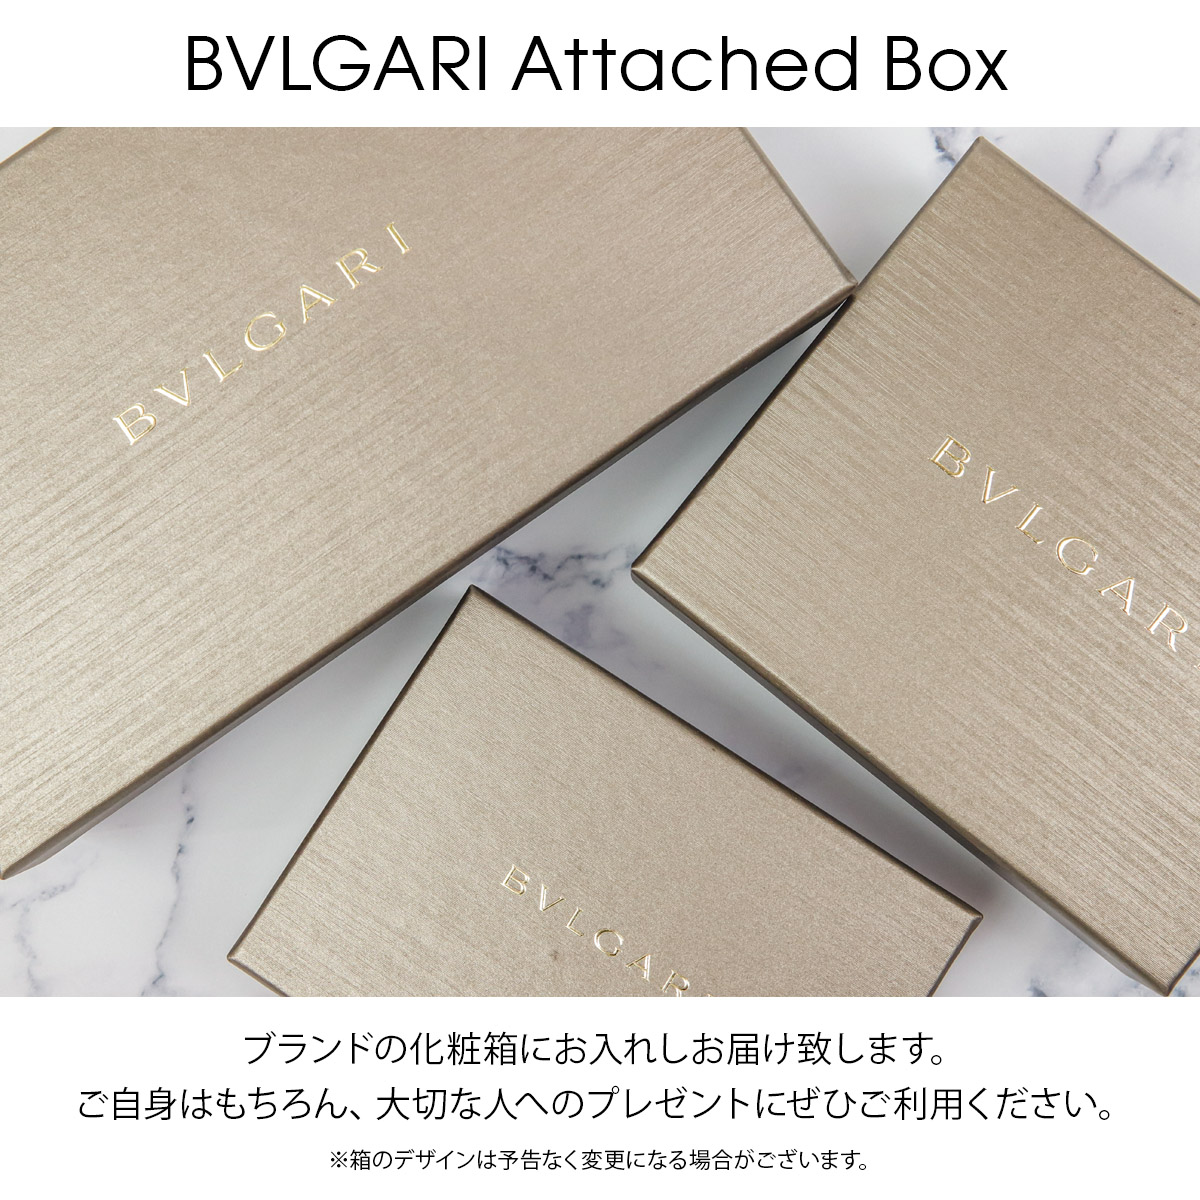 OctoOCTO black black 36970 regular article Christmas boyfriend she man woman gift 2017 brand-name products Shin pull new work with the new Bulgari BVLGARI wallet long wallet men leather genuine leather folio chain